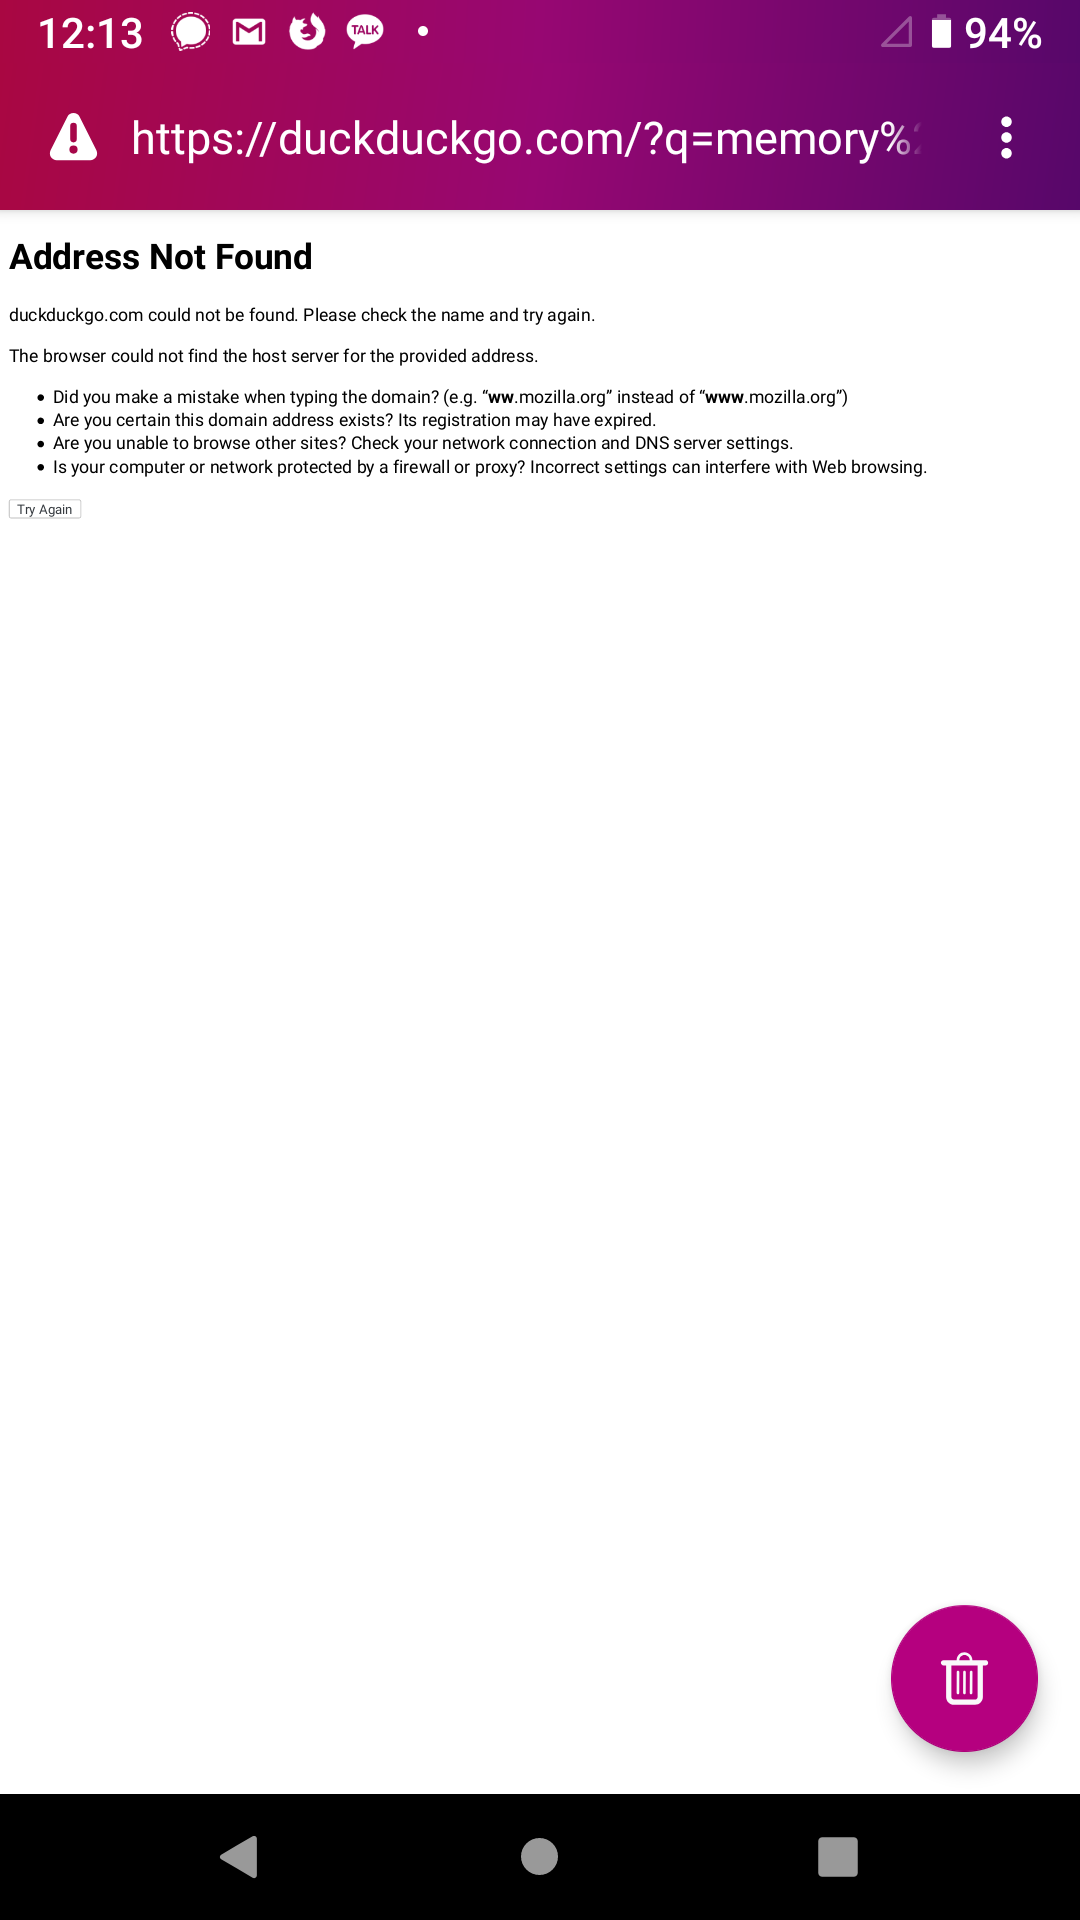 GeckoView unable to load error page is not formatted for mobile